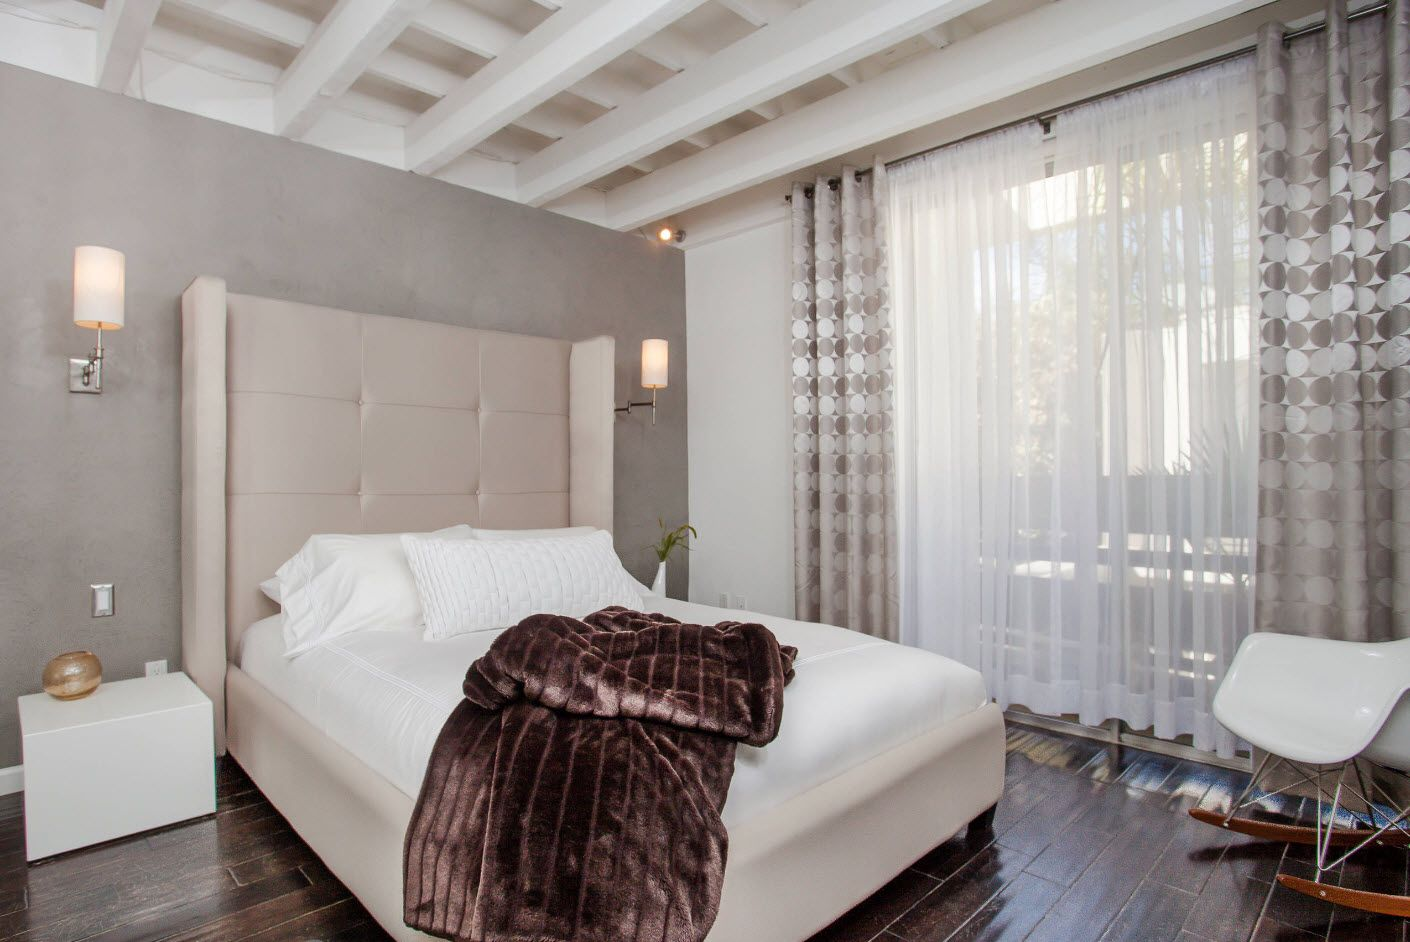 Bedroom ceiling drapes -  White Wooden Grid Ceiling At The Modern Decorated Interior Of The Bedroom